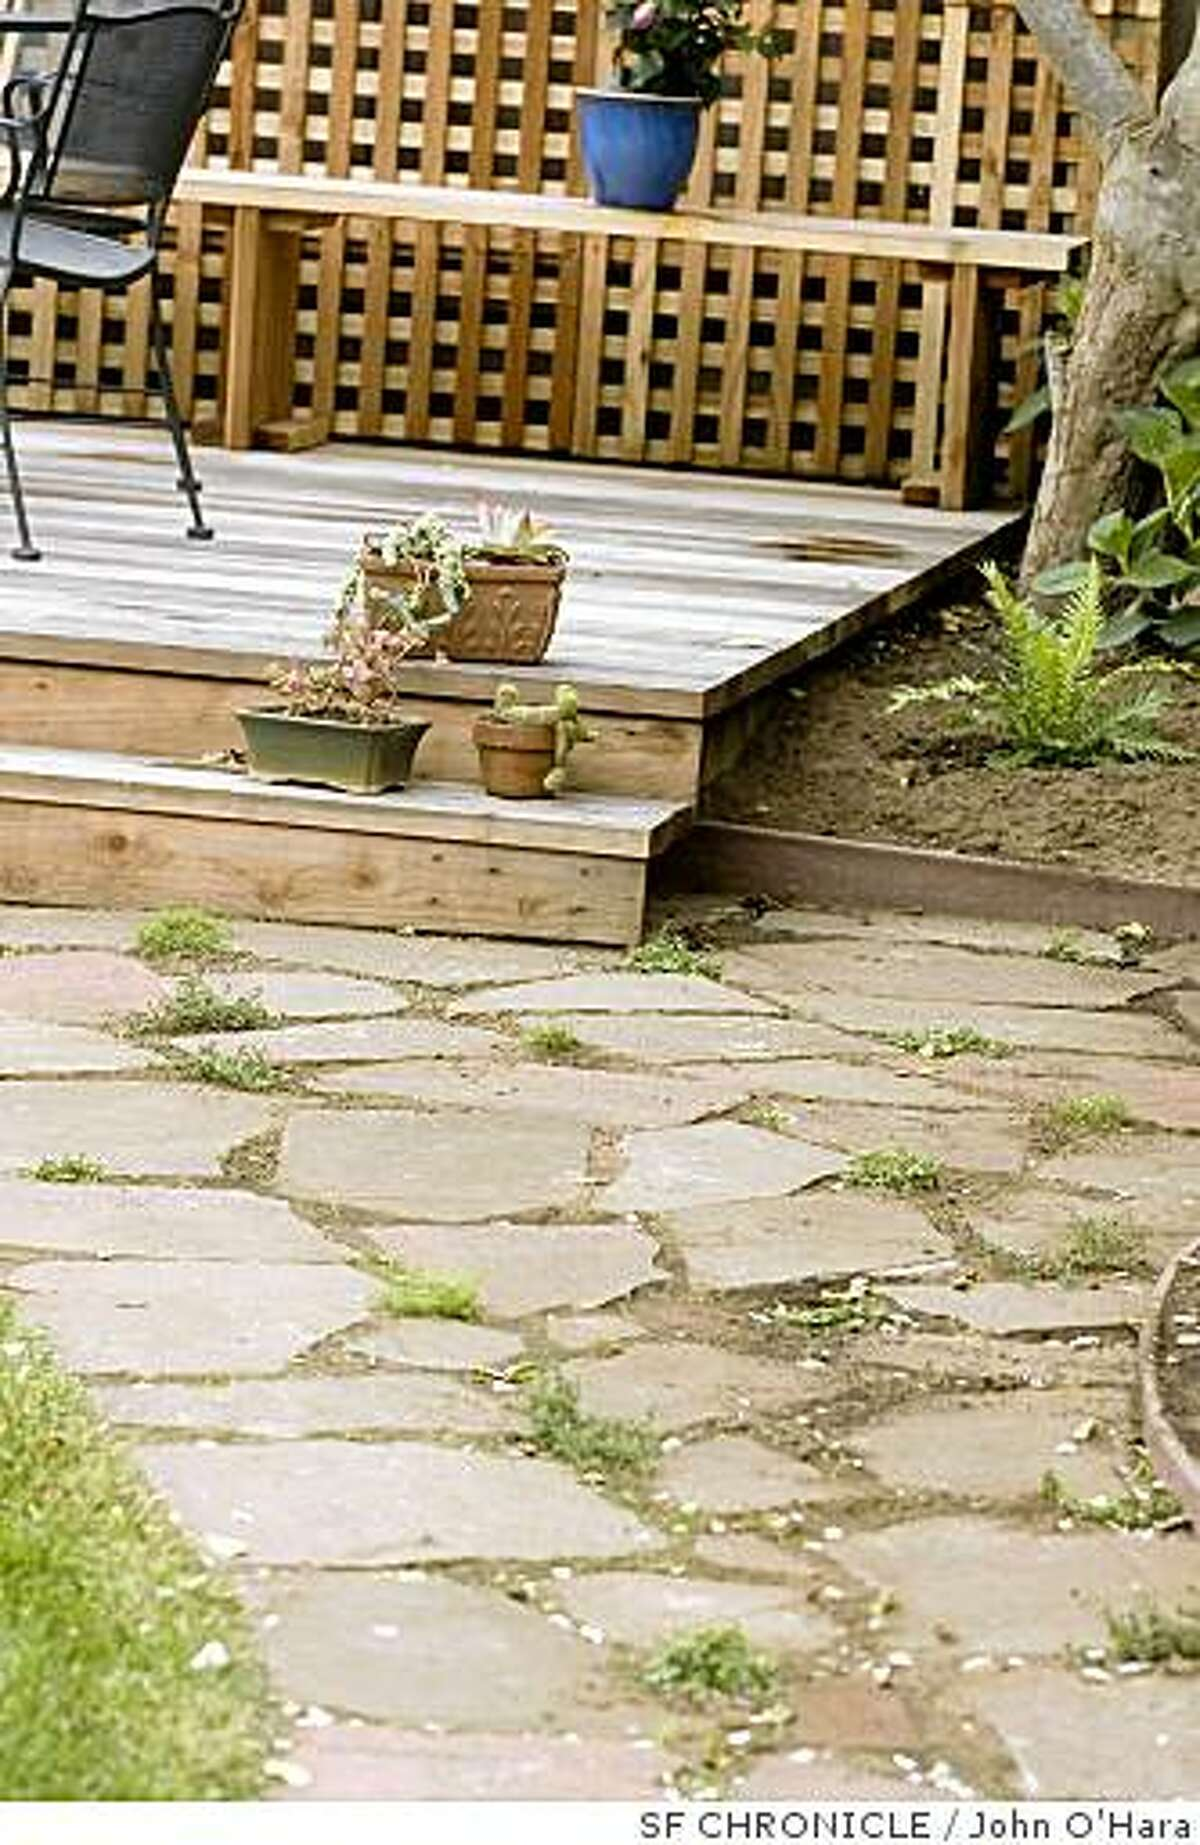 Paul Kilduff residence, San Francisco. A detached deck. 11x18 feet, in a back yard that is approx 40X60 ft. Pavers on the ground were from old existing cement in rear yard. Alica Kilduff 5 yrs. waters plants.